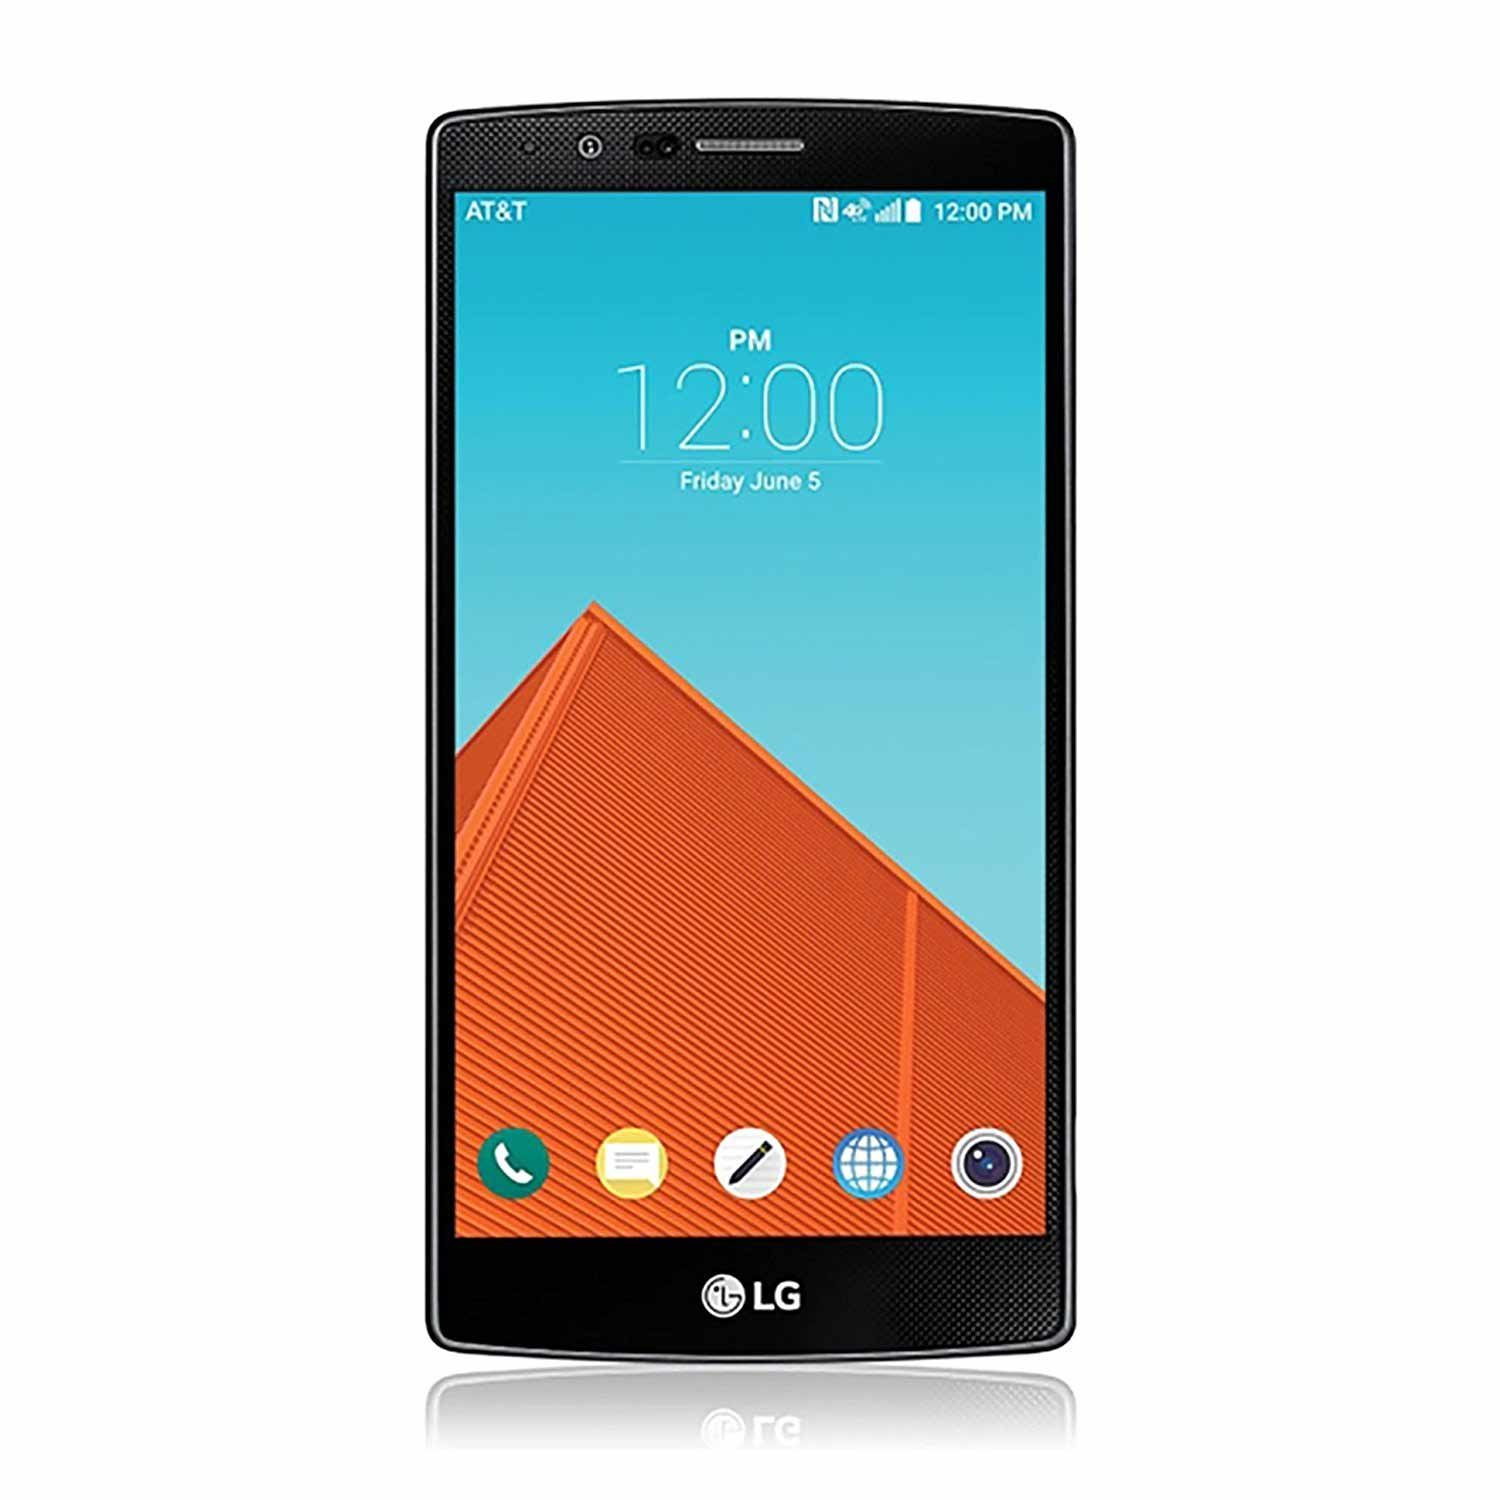 Amazon.com: LG G4 H810 Metallic Grey GSM Unlocked Android 4G LTE 32GB  Smartphone: Cell Phones & Accessories